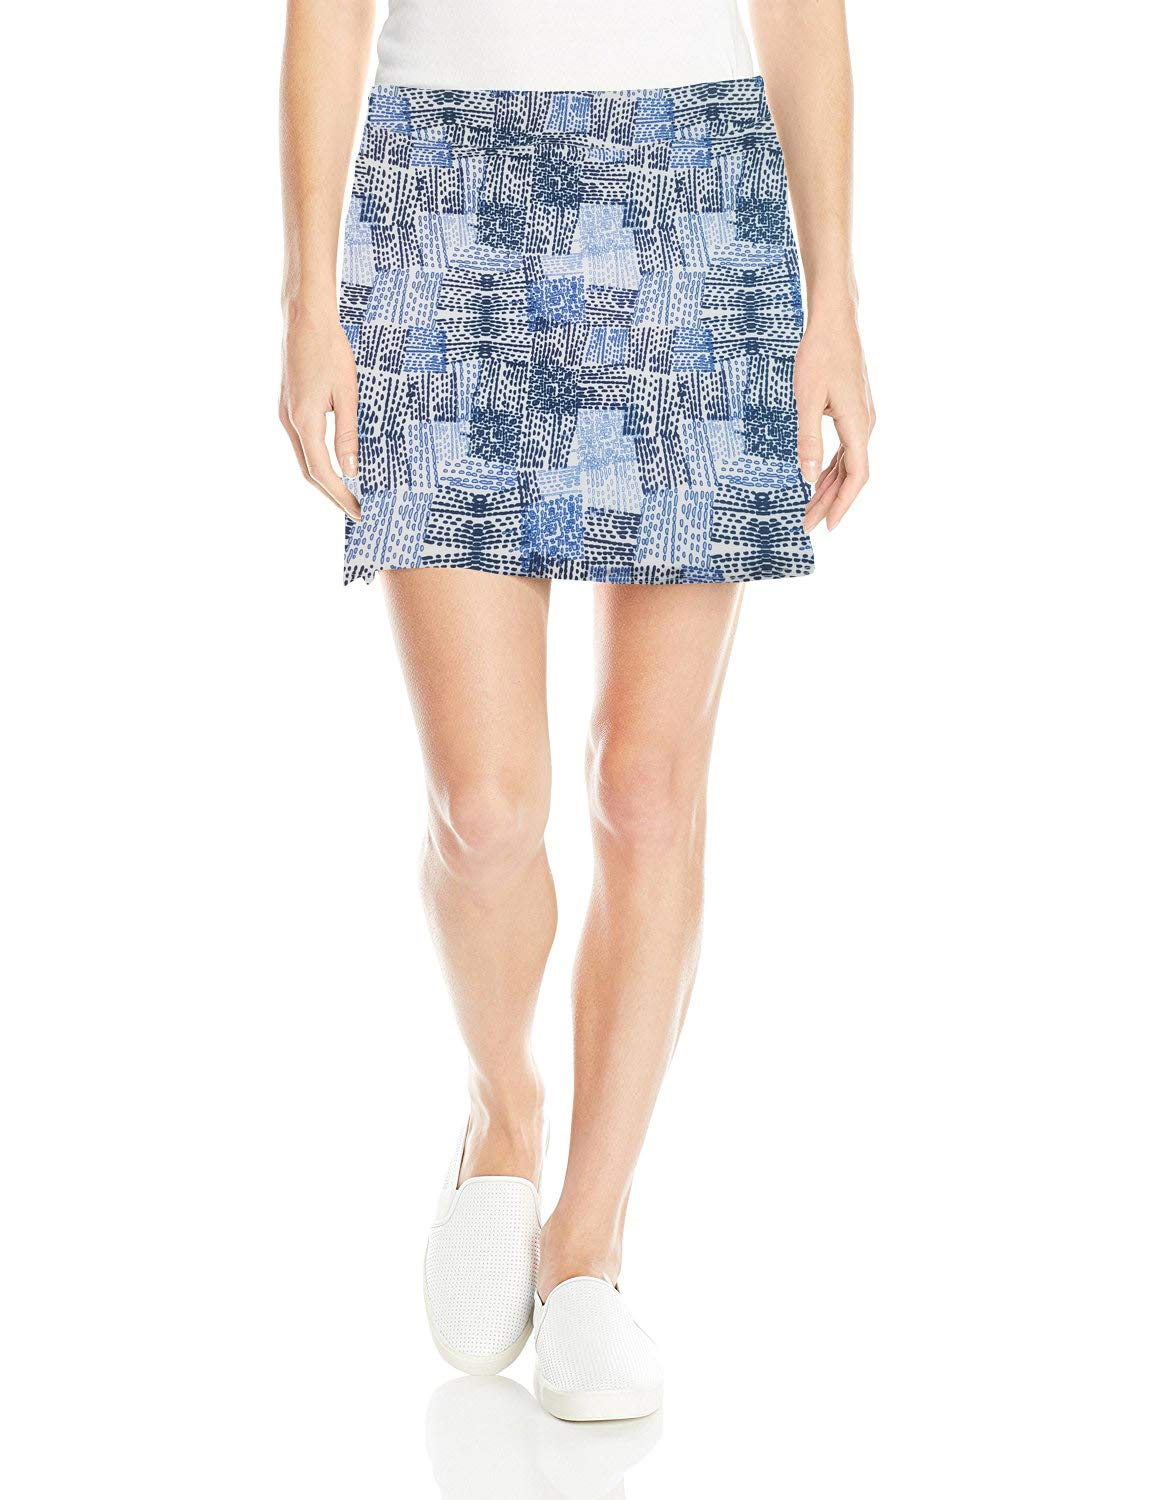 Colorado Clothing Women's Everyday Skort (Blue Patchwork, Large) by Colorado Clothing